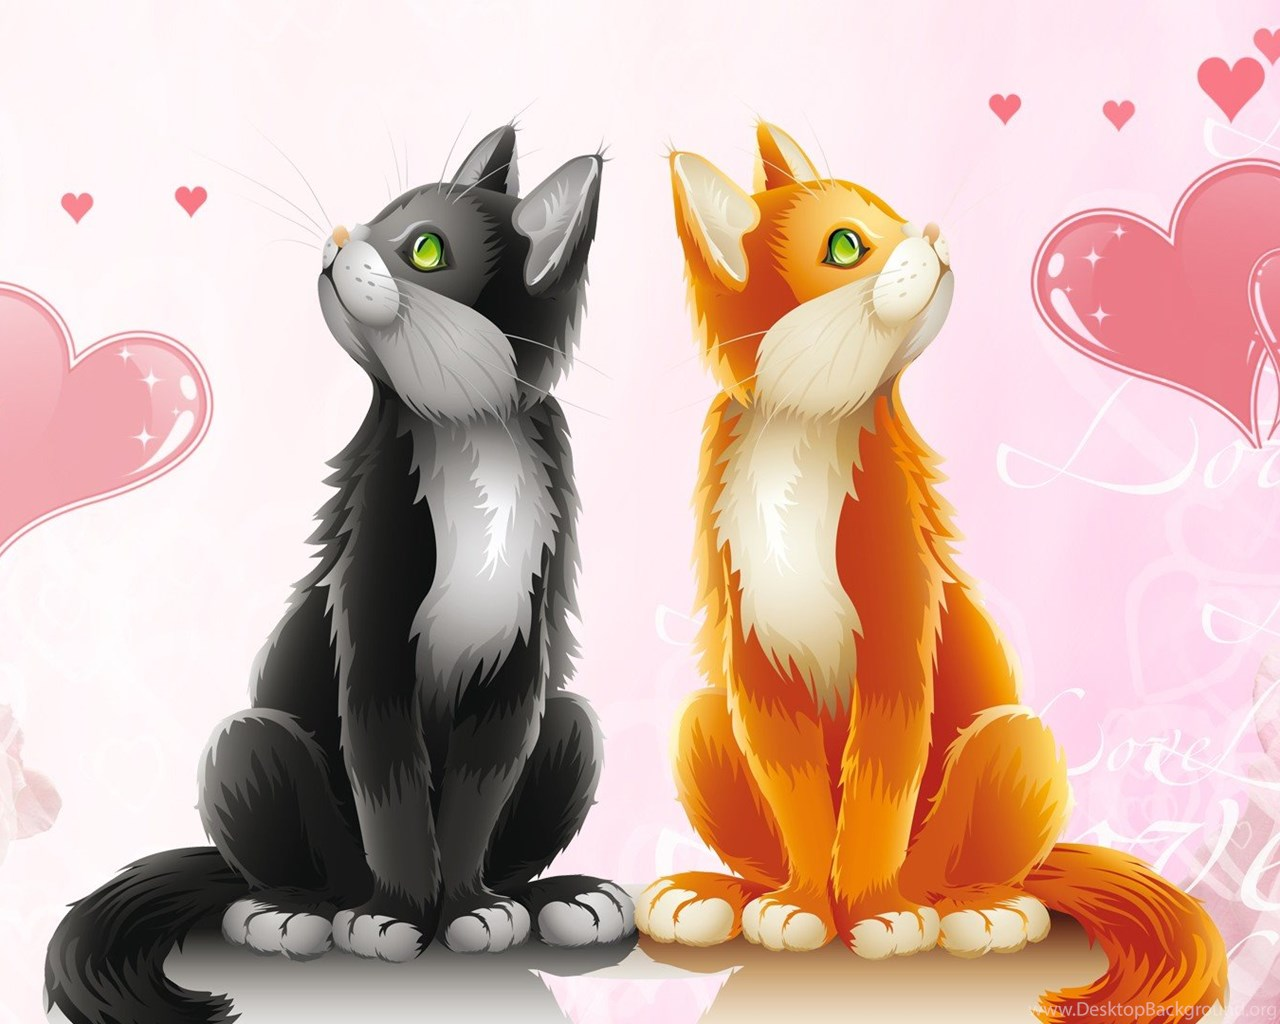 Cute Cartoon Animal Wallpapers For Android Cute Animal Valentines Day Wallpapers Valentine Week